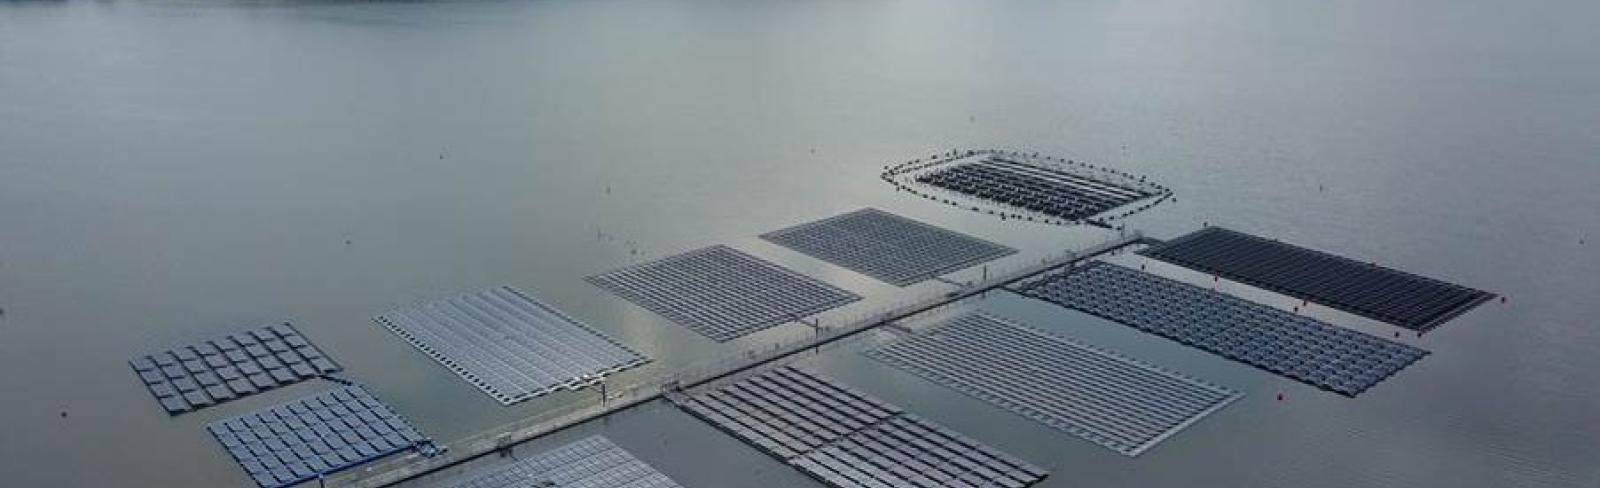 Growing Exponentially, Floating Solar Opens Up New Horizons for Renewable Energy: Report